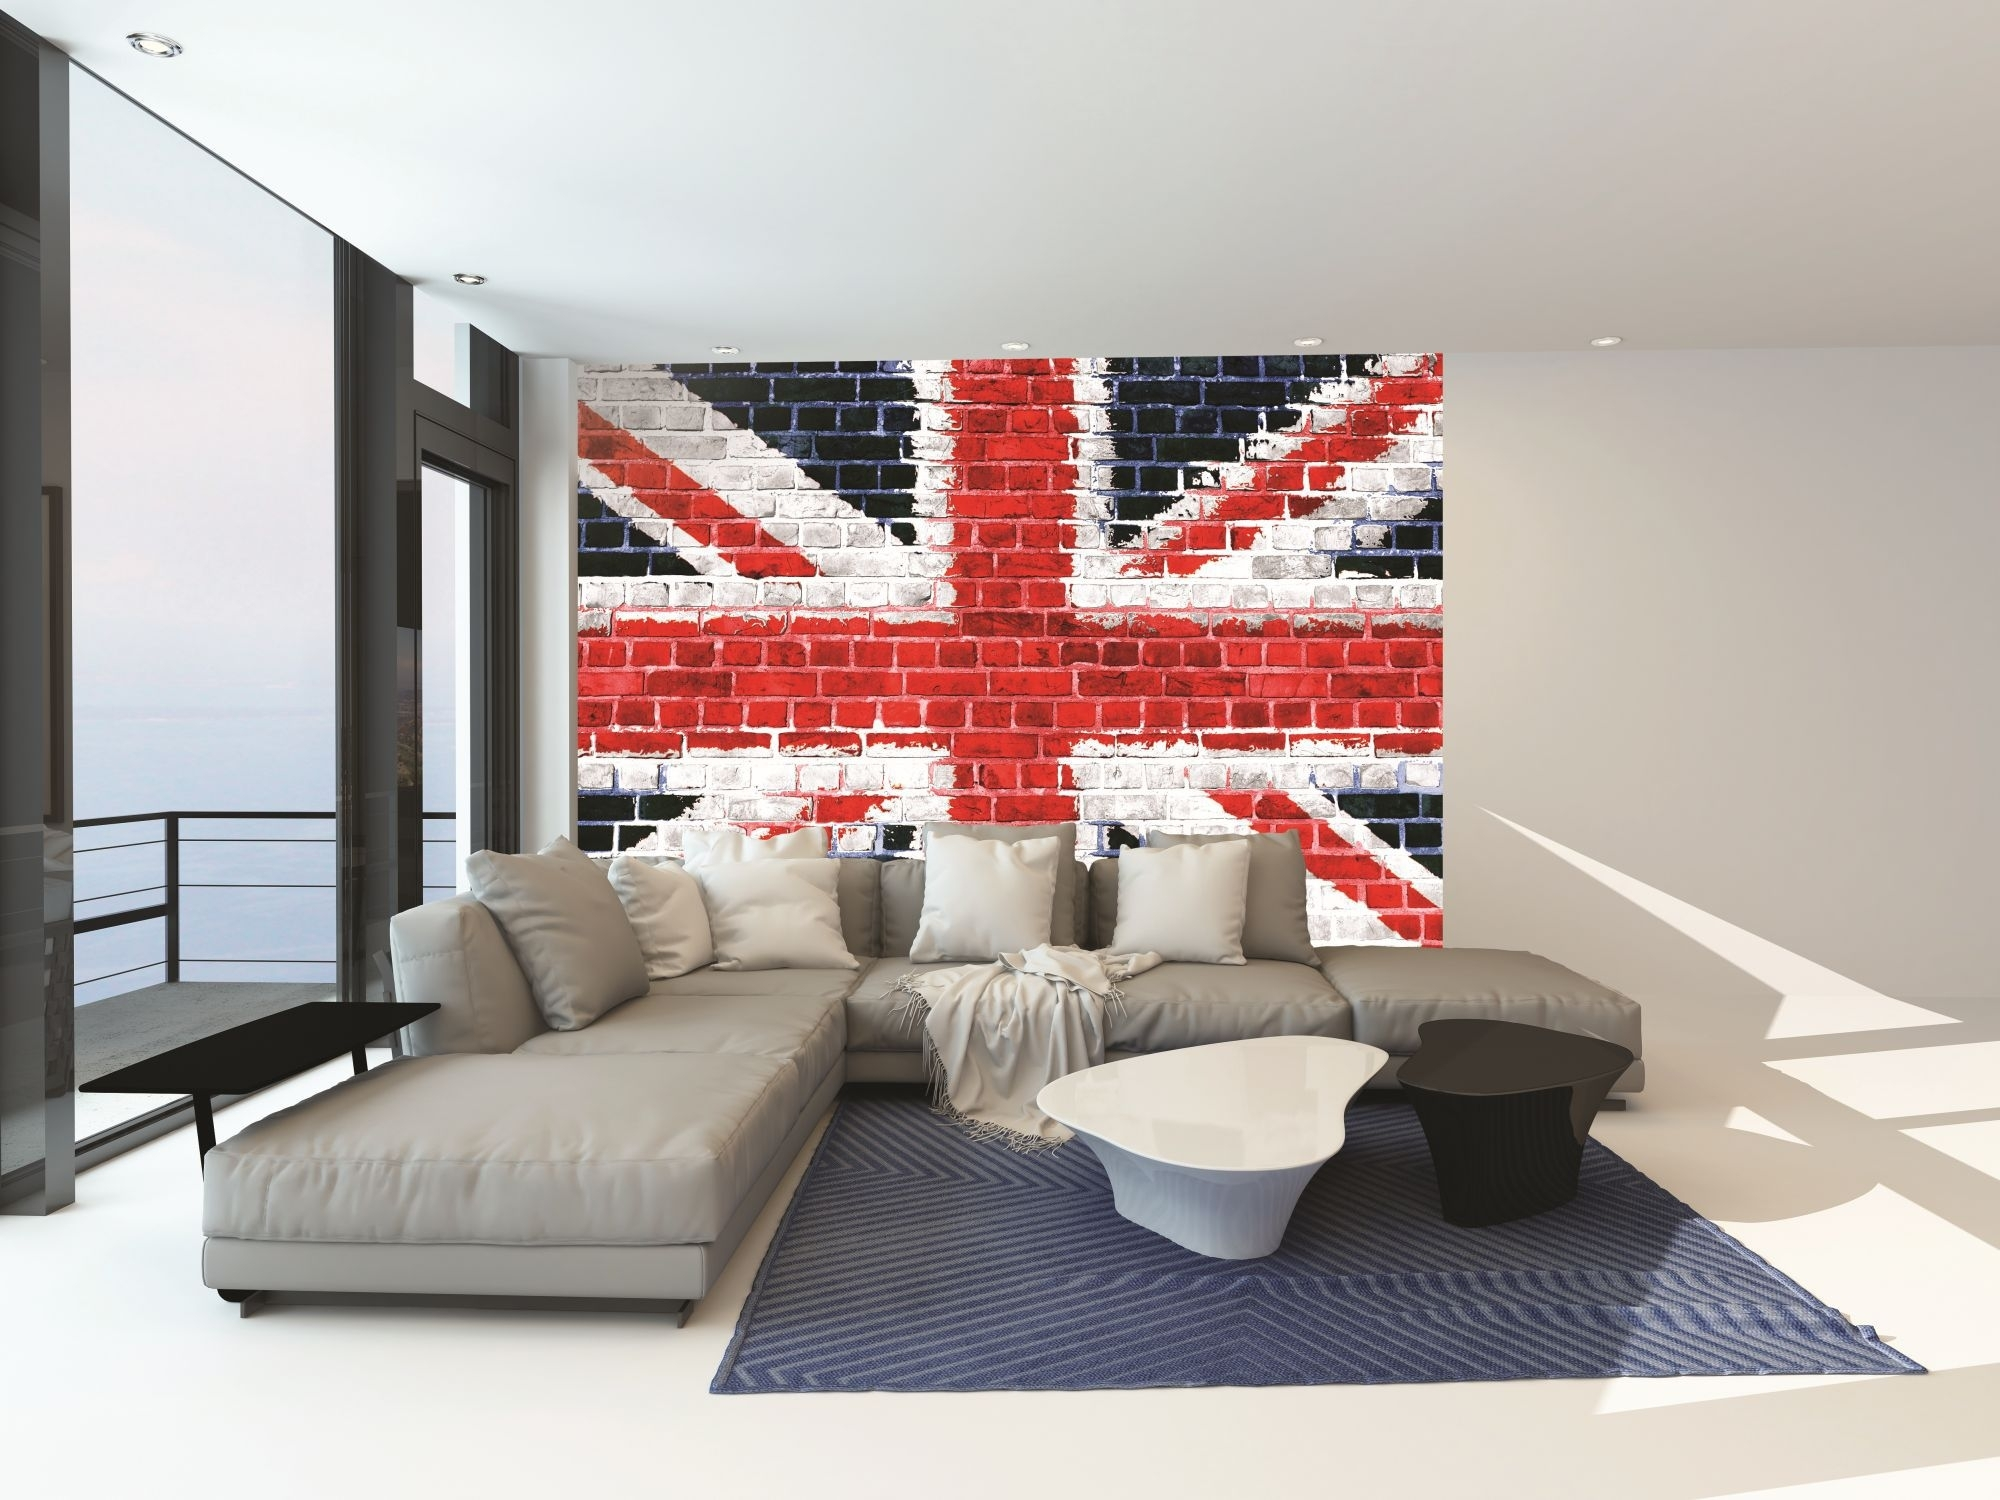 Diy Ideas For Mural Modern Home In Homedesign Amazing Wall Art Regarding Most Current House Of Fraser Canvas Wall Art (Gallery 8 of 15)